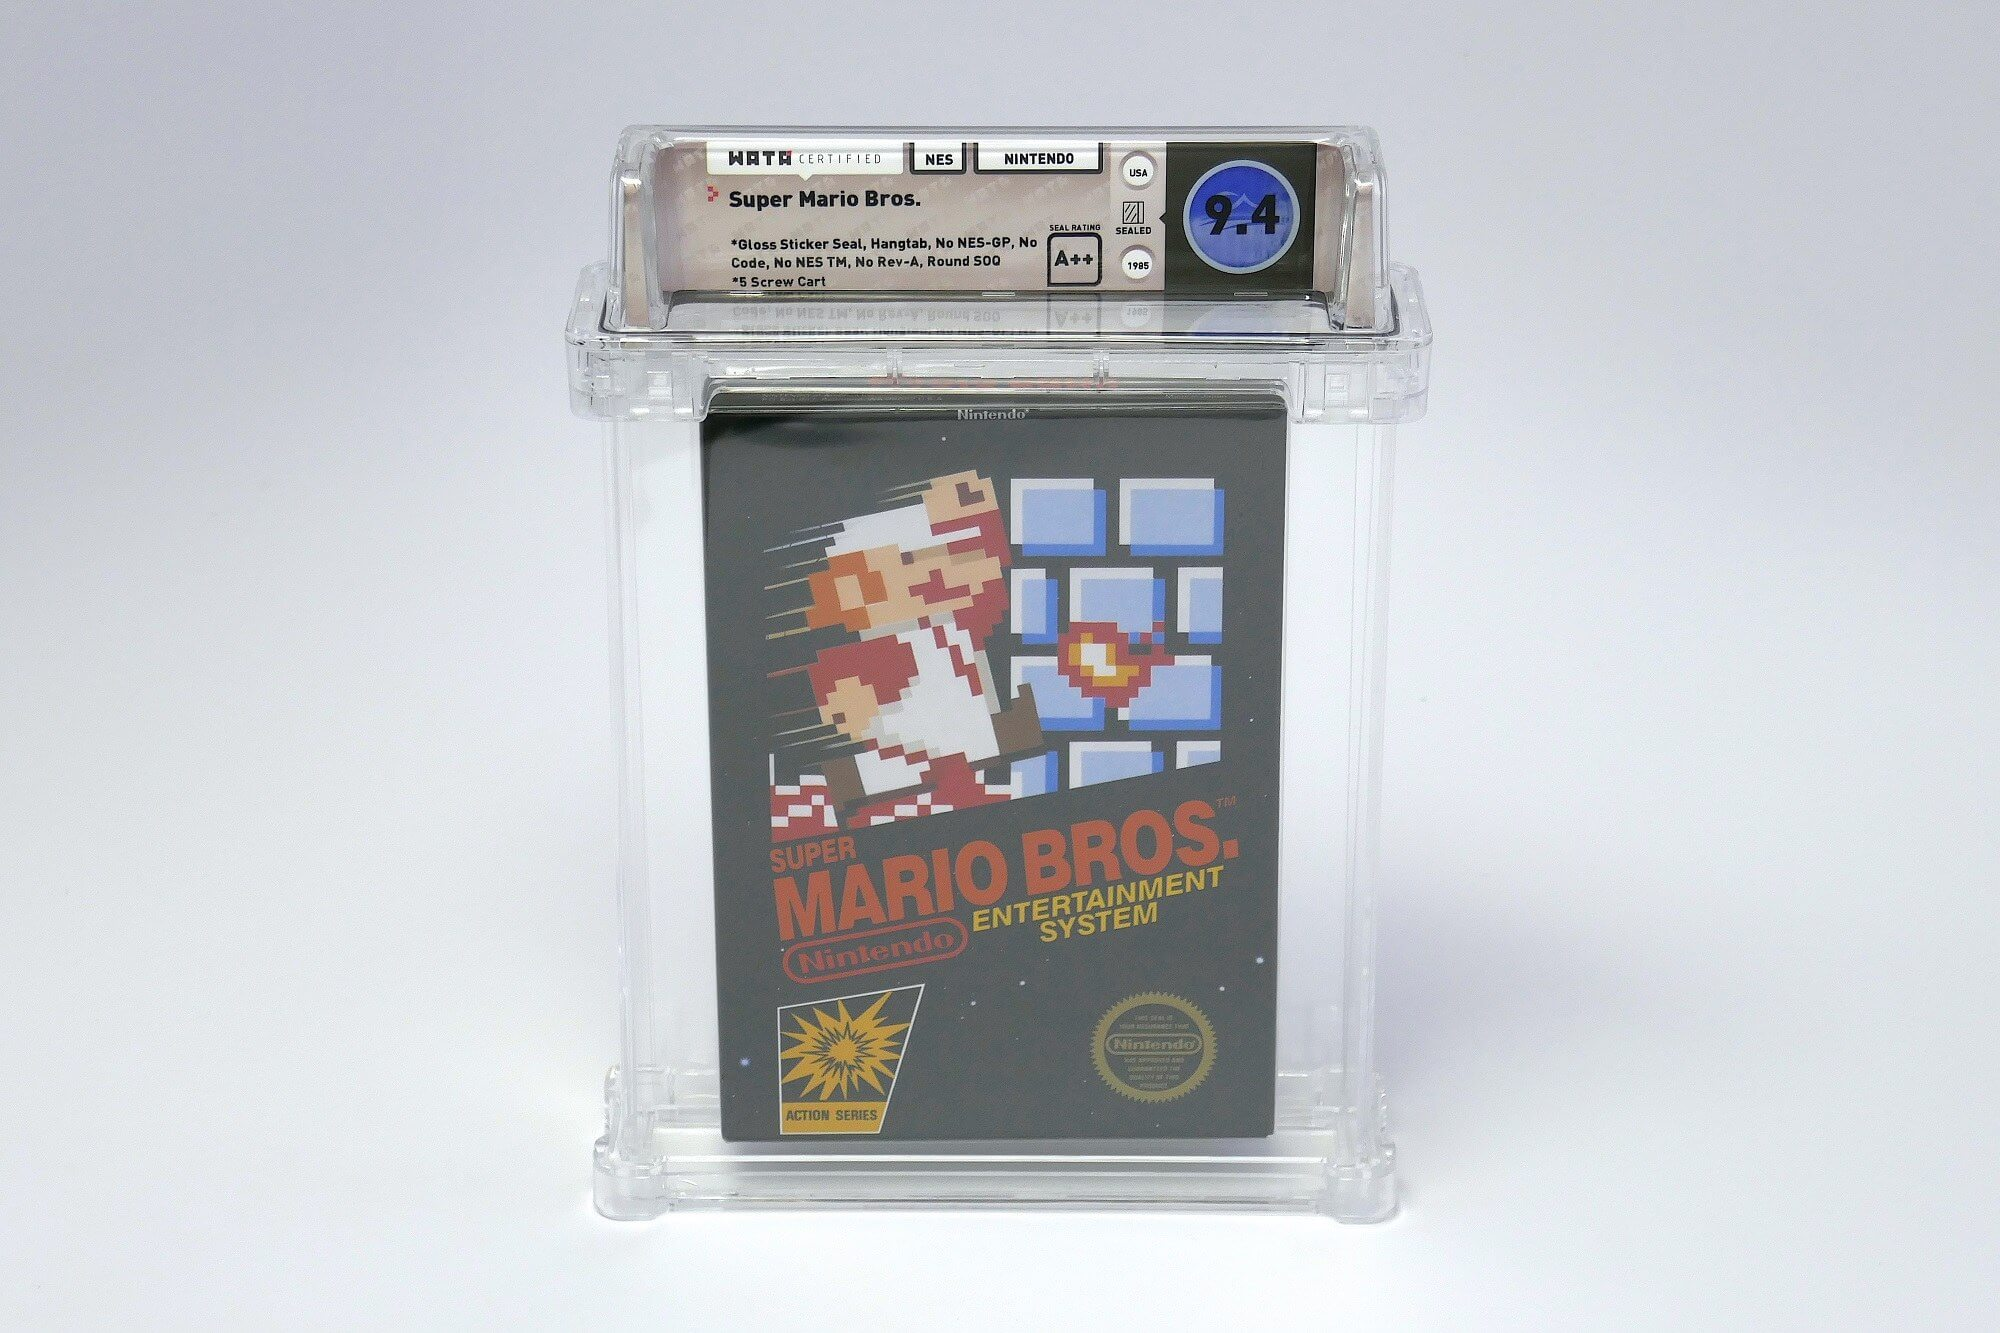 One-of-a-kind 'Super Mario Bros.' copy sells for $100,000